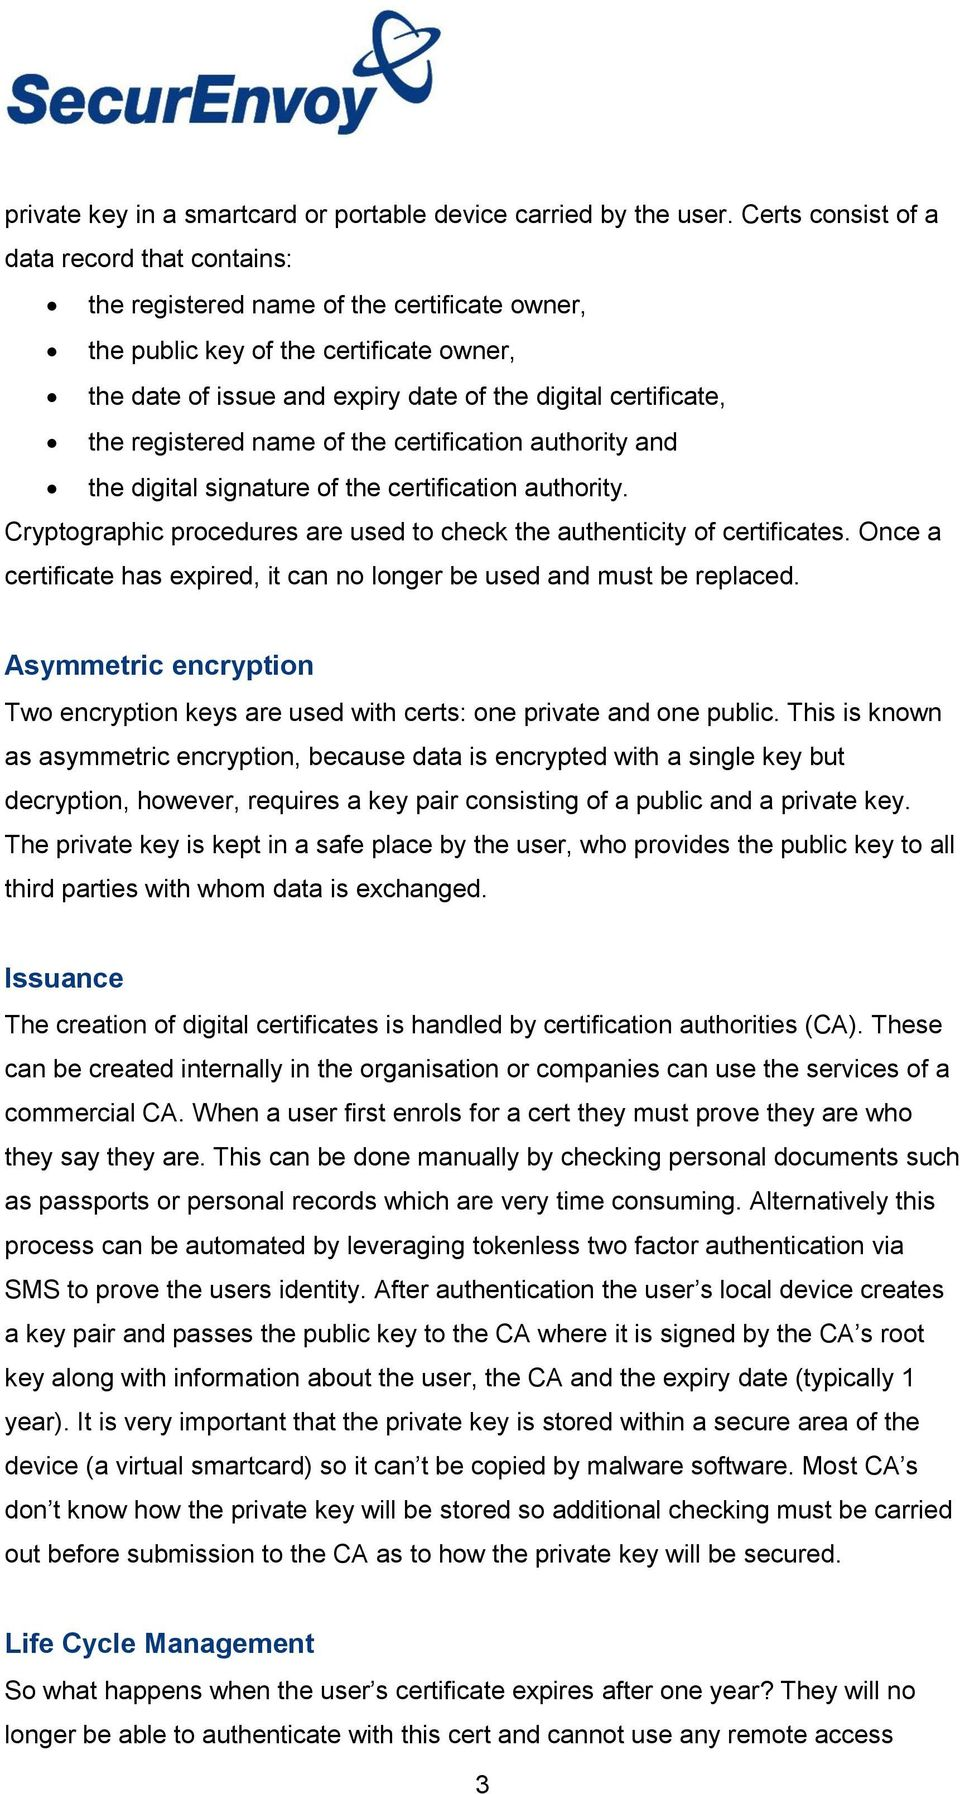 registered name of the certification authority and the digital signature of the certification authority. Cryptographic procedures are used to check the authenticity of certificates.